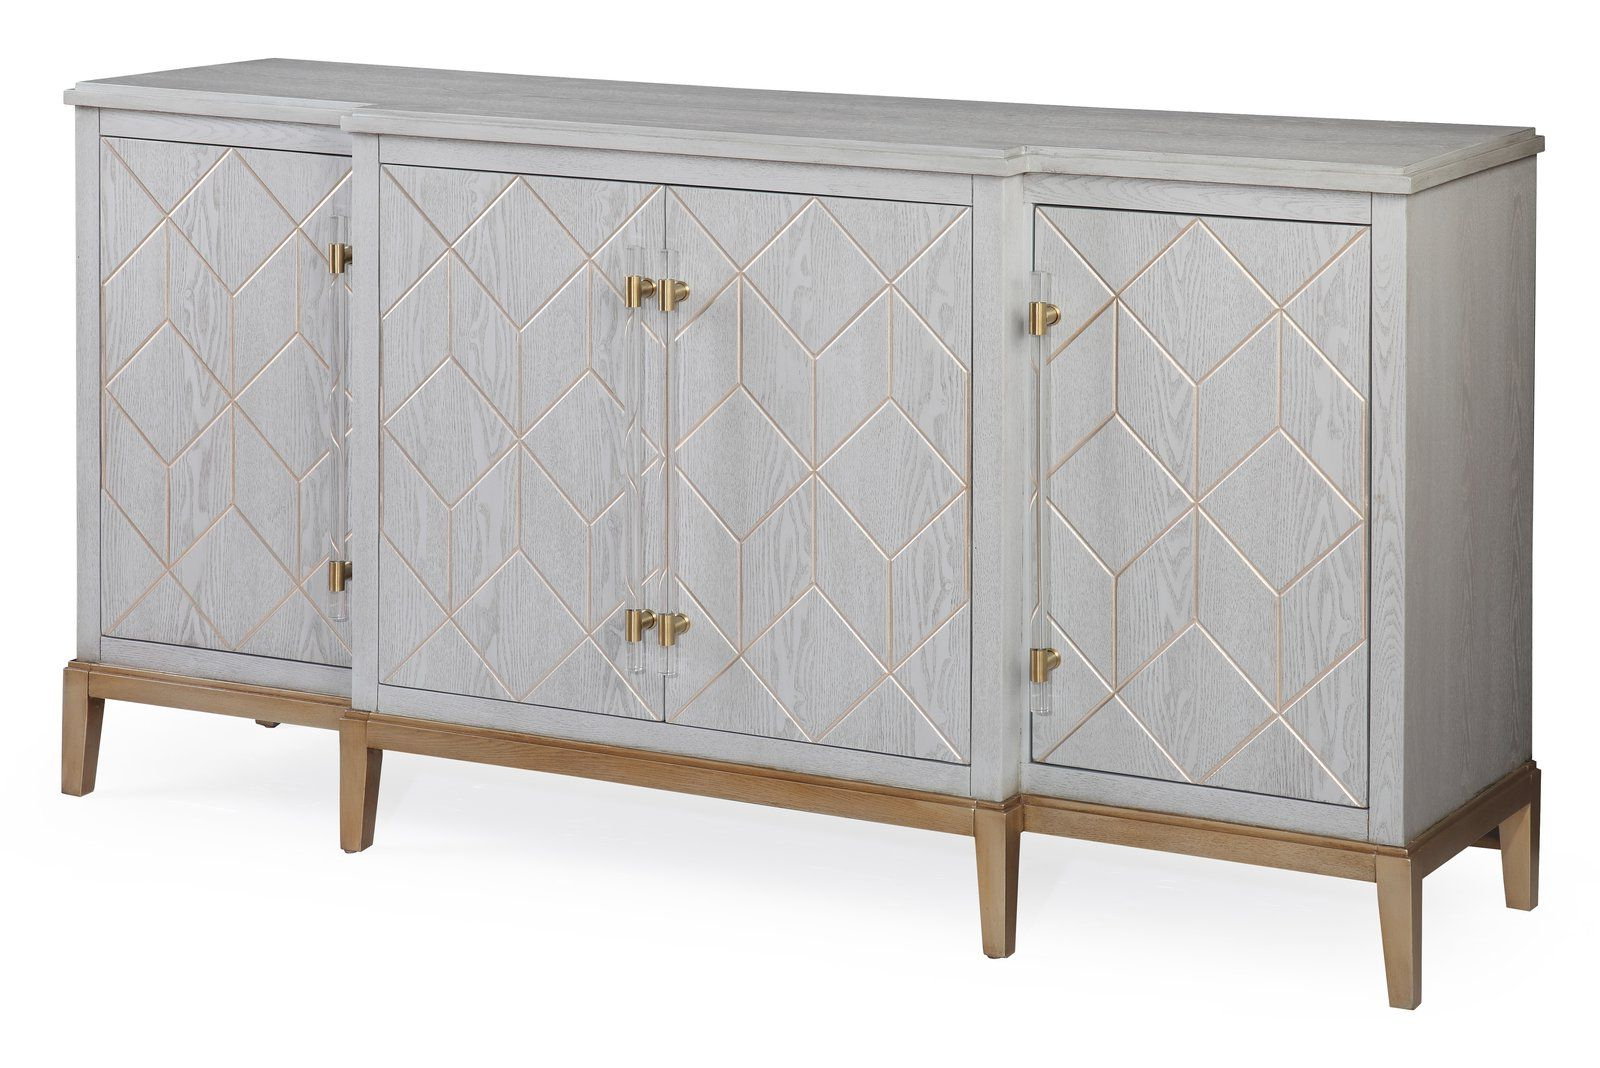 Rosson Sideboard | Dressers & Console Tables | Dining Room Within Rosson Sideboards (View 3 of 20)